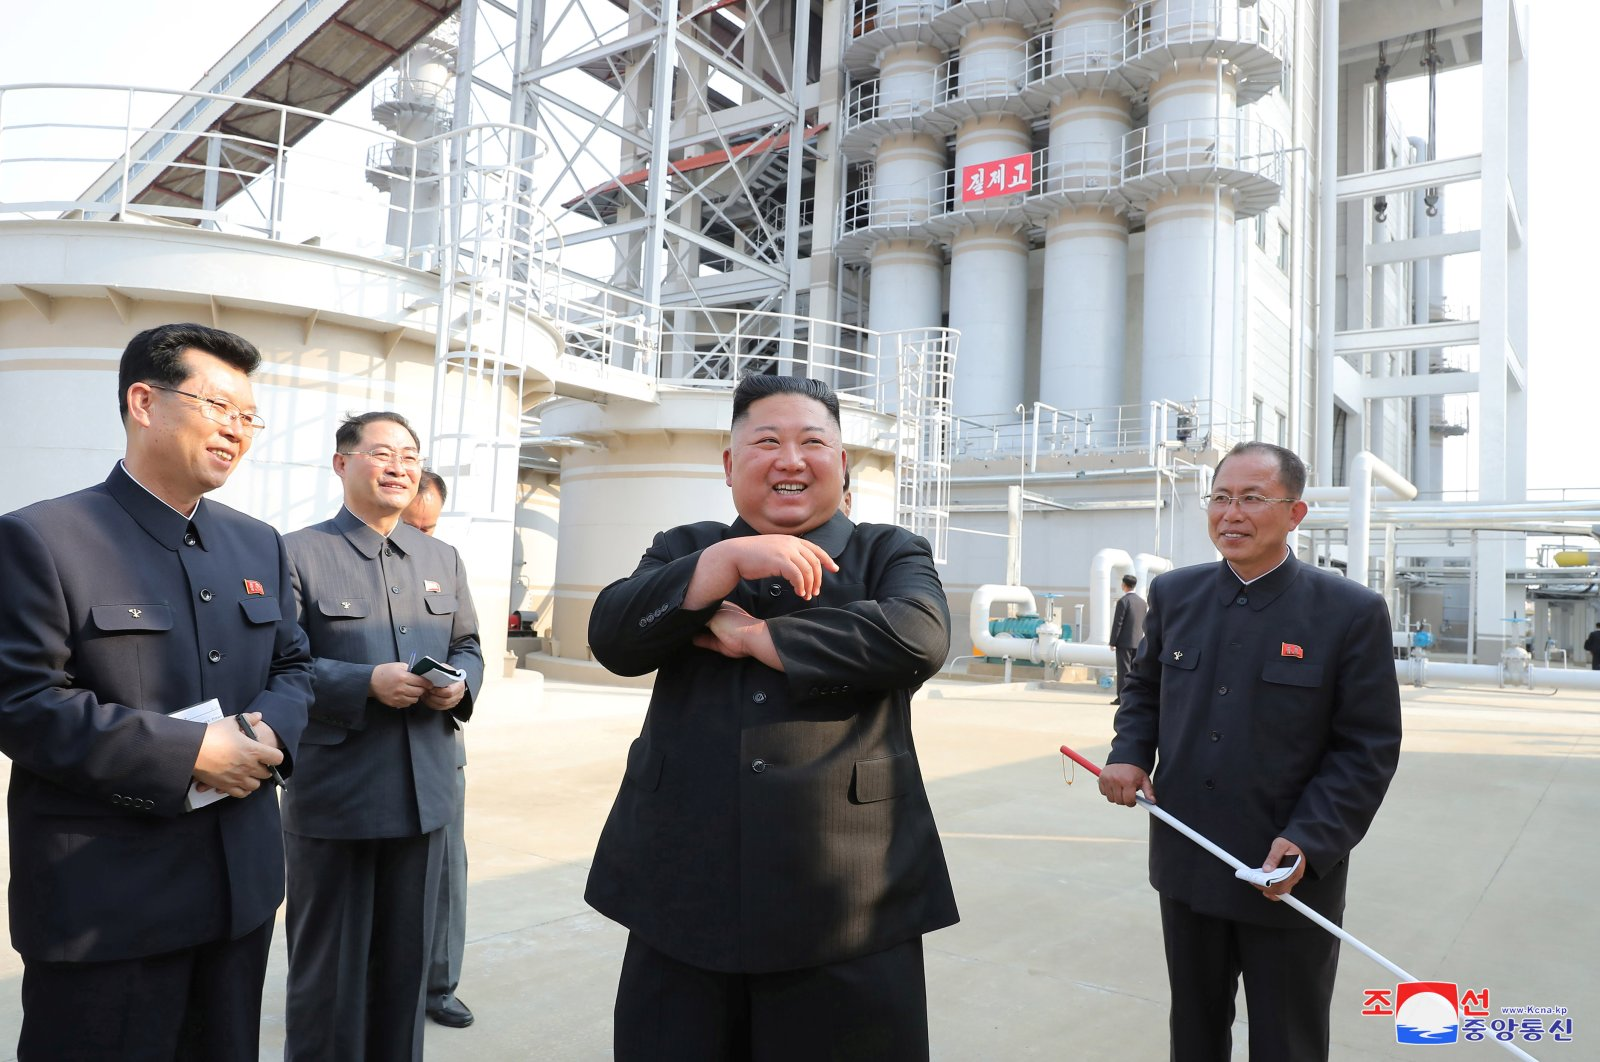 North Korean leader Kim Jong Un attends the completion of a fertilizer plant in a region north of the capital, Pyongyang, in this image released by North Korea's Korean Central News Agency (KCNA) on May 2, 2020.